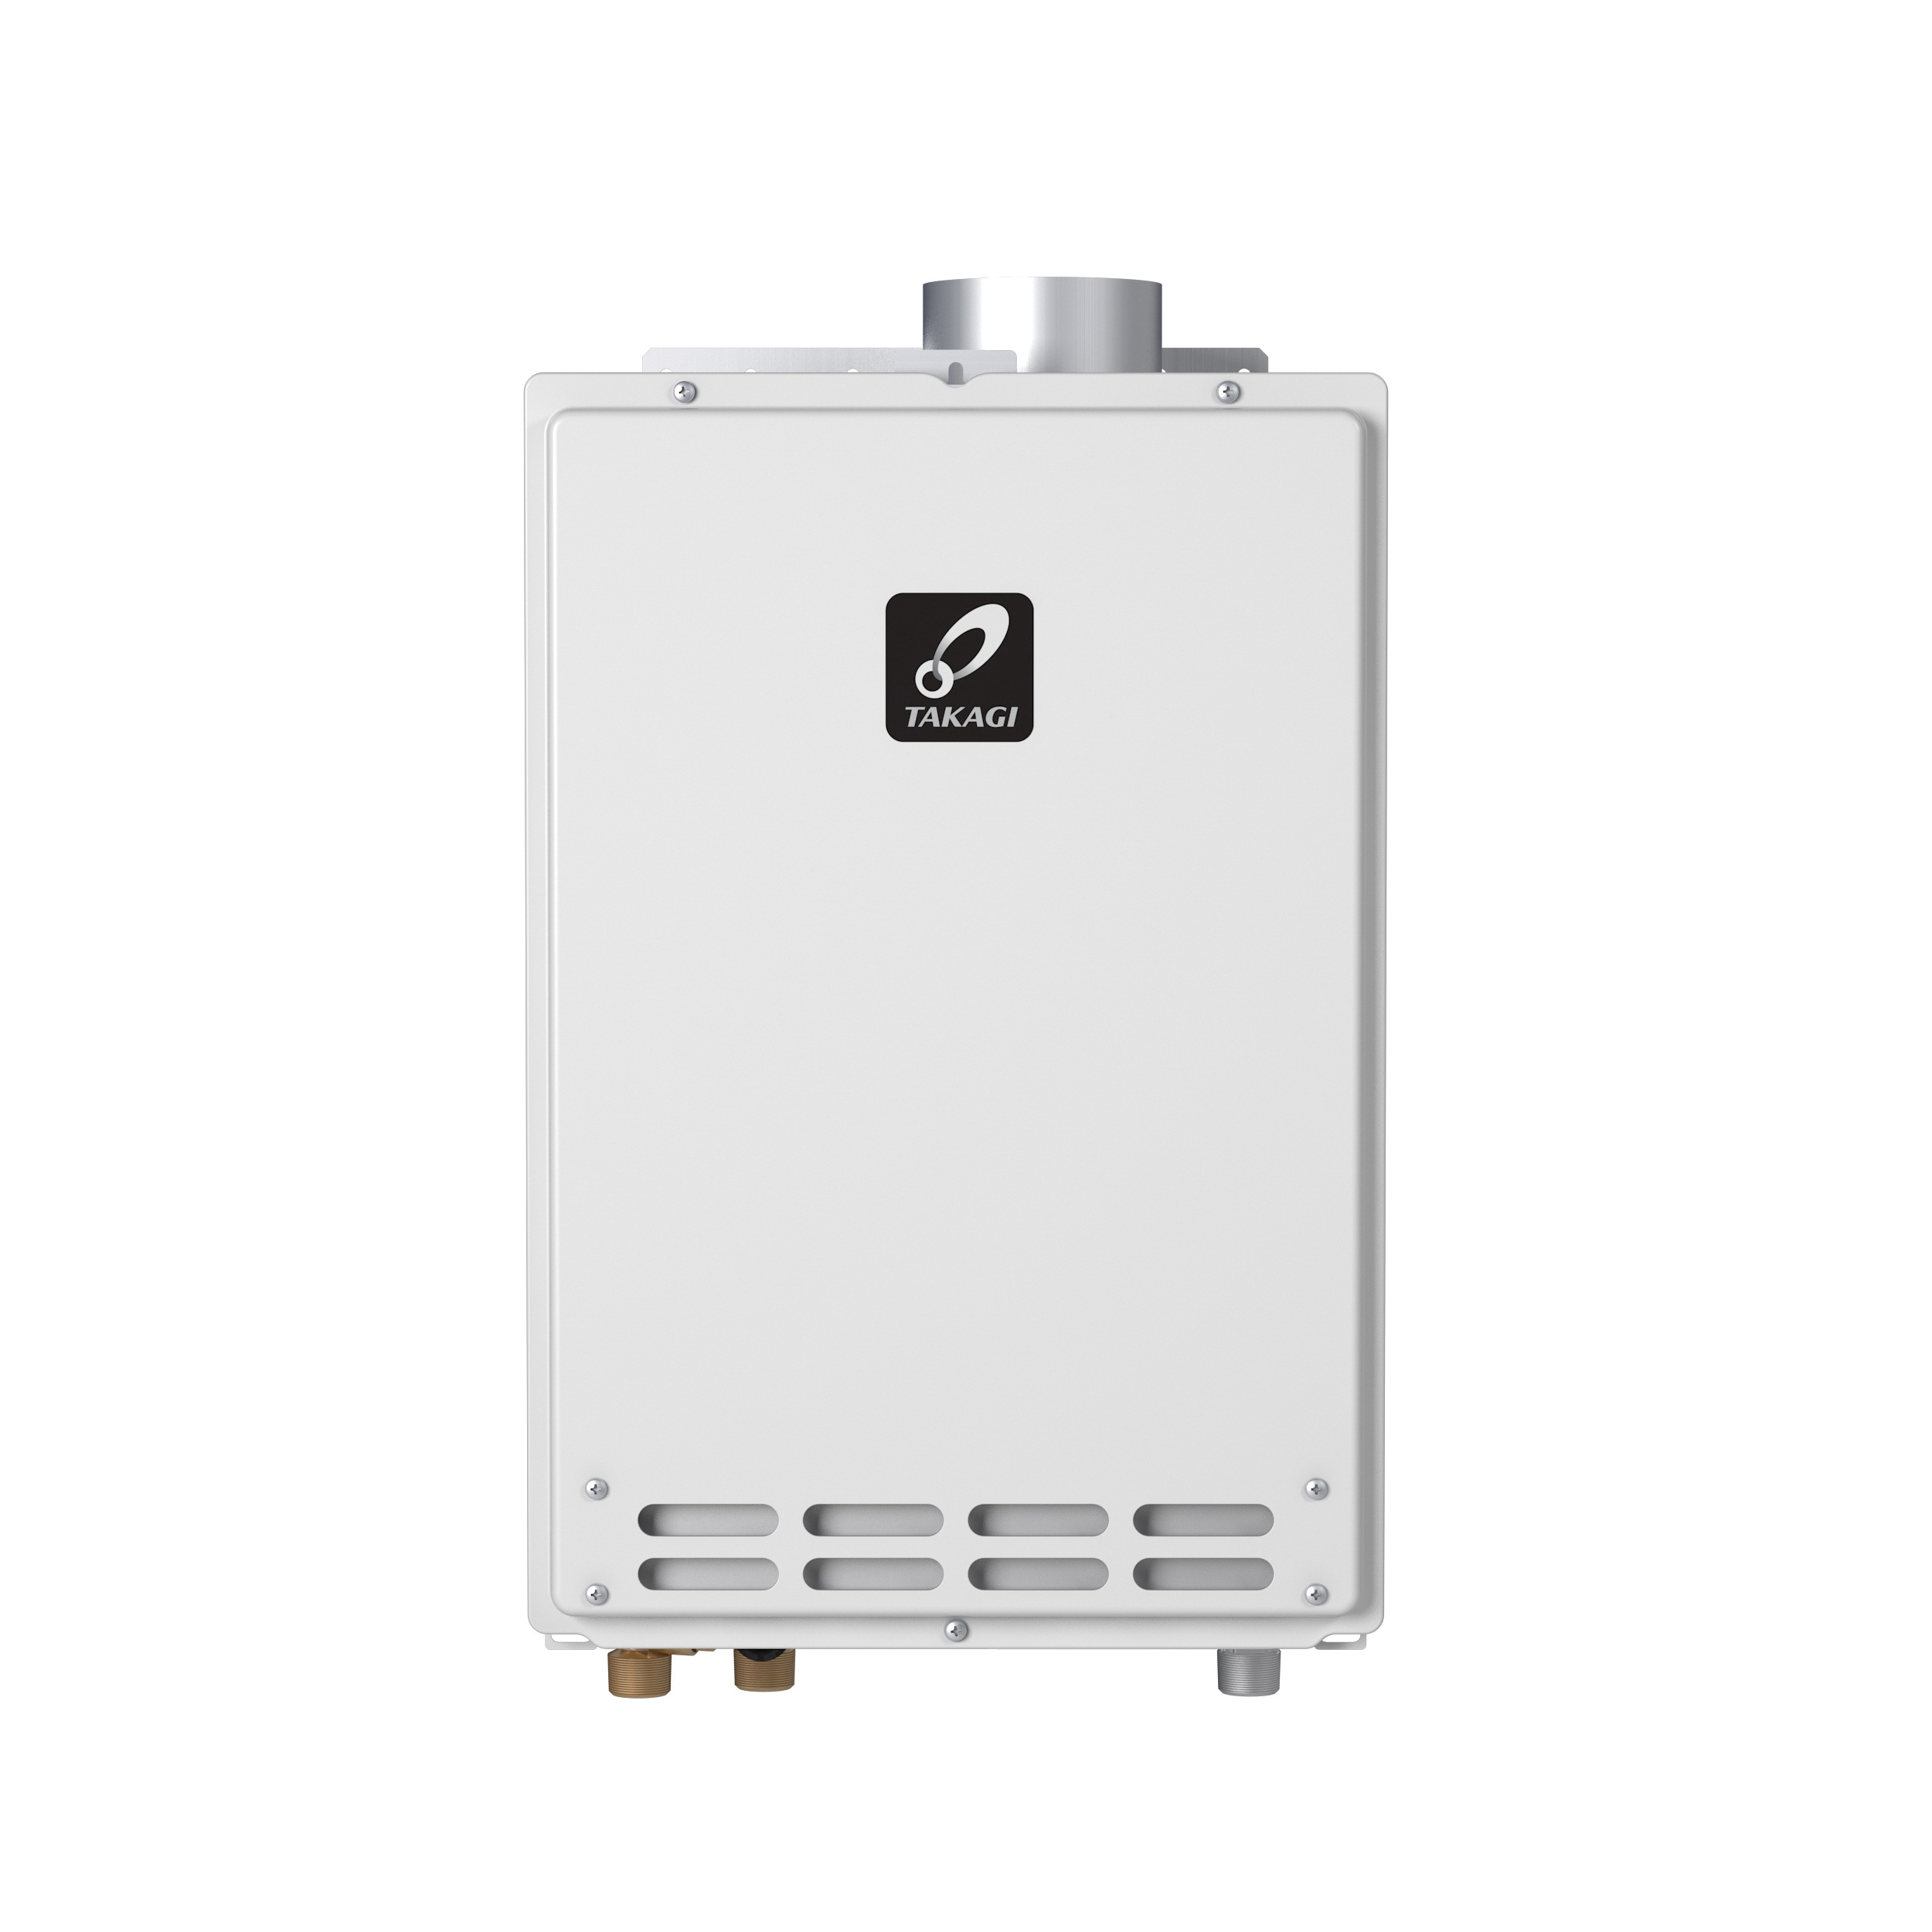 Takagi 100123301 D2 Tankless Water Heater, Liquid Propane, 199000 Btu/hr Heating, Indoor, Non Condensing, 10 gpm, 4 in, 0.82 Energy Factor, Commercial/Residential/Dual: Commercial, Ultra Low NOx: No